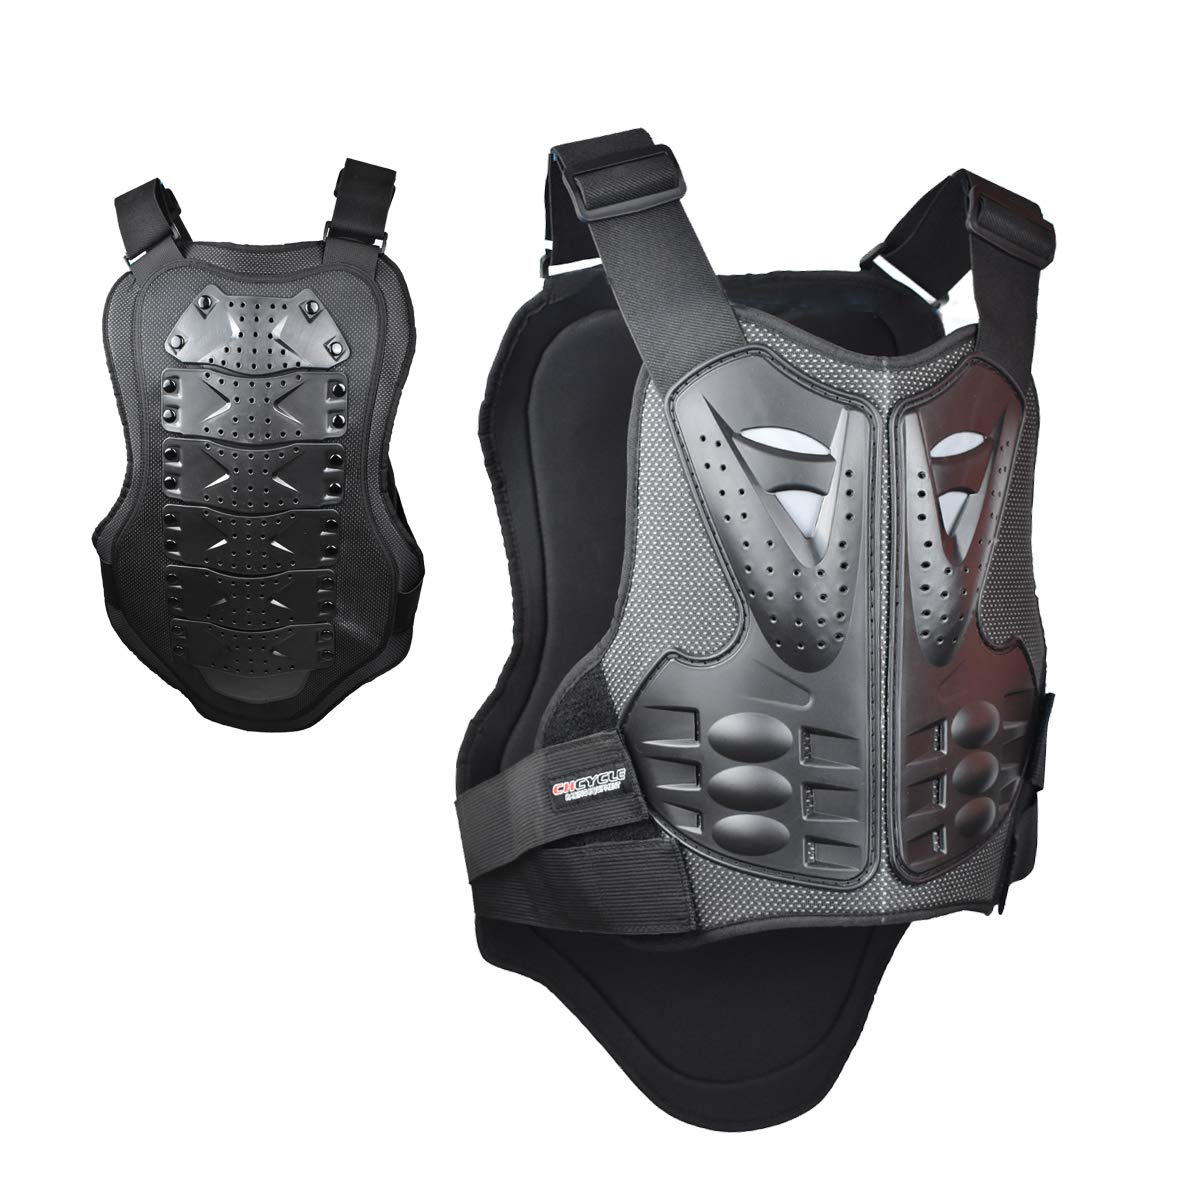 CHCYCLE motorcycle vest armor pretection (X-Large) by CHCYCLE